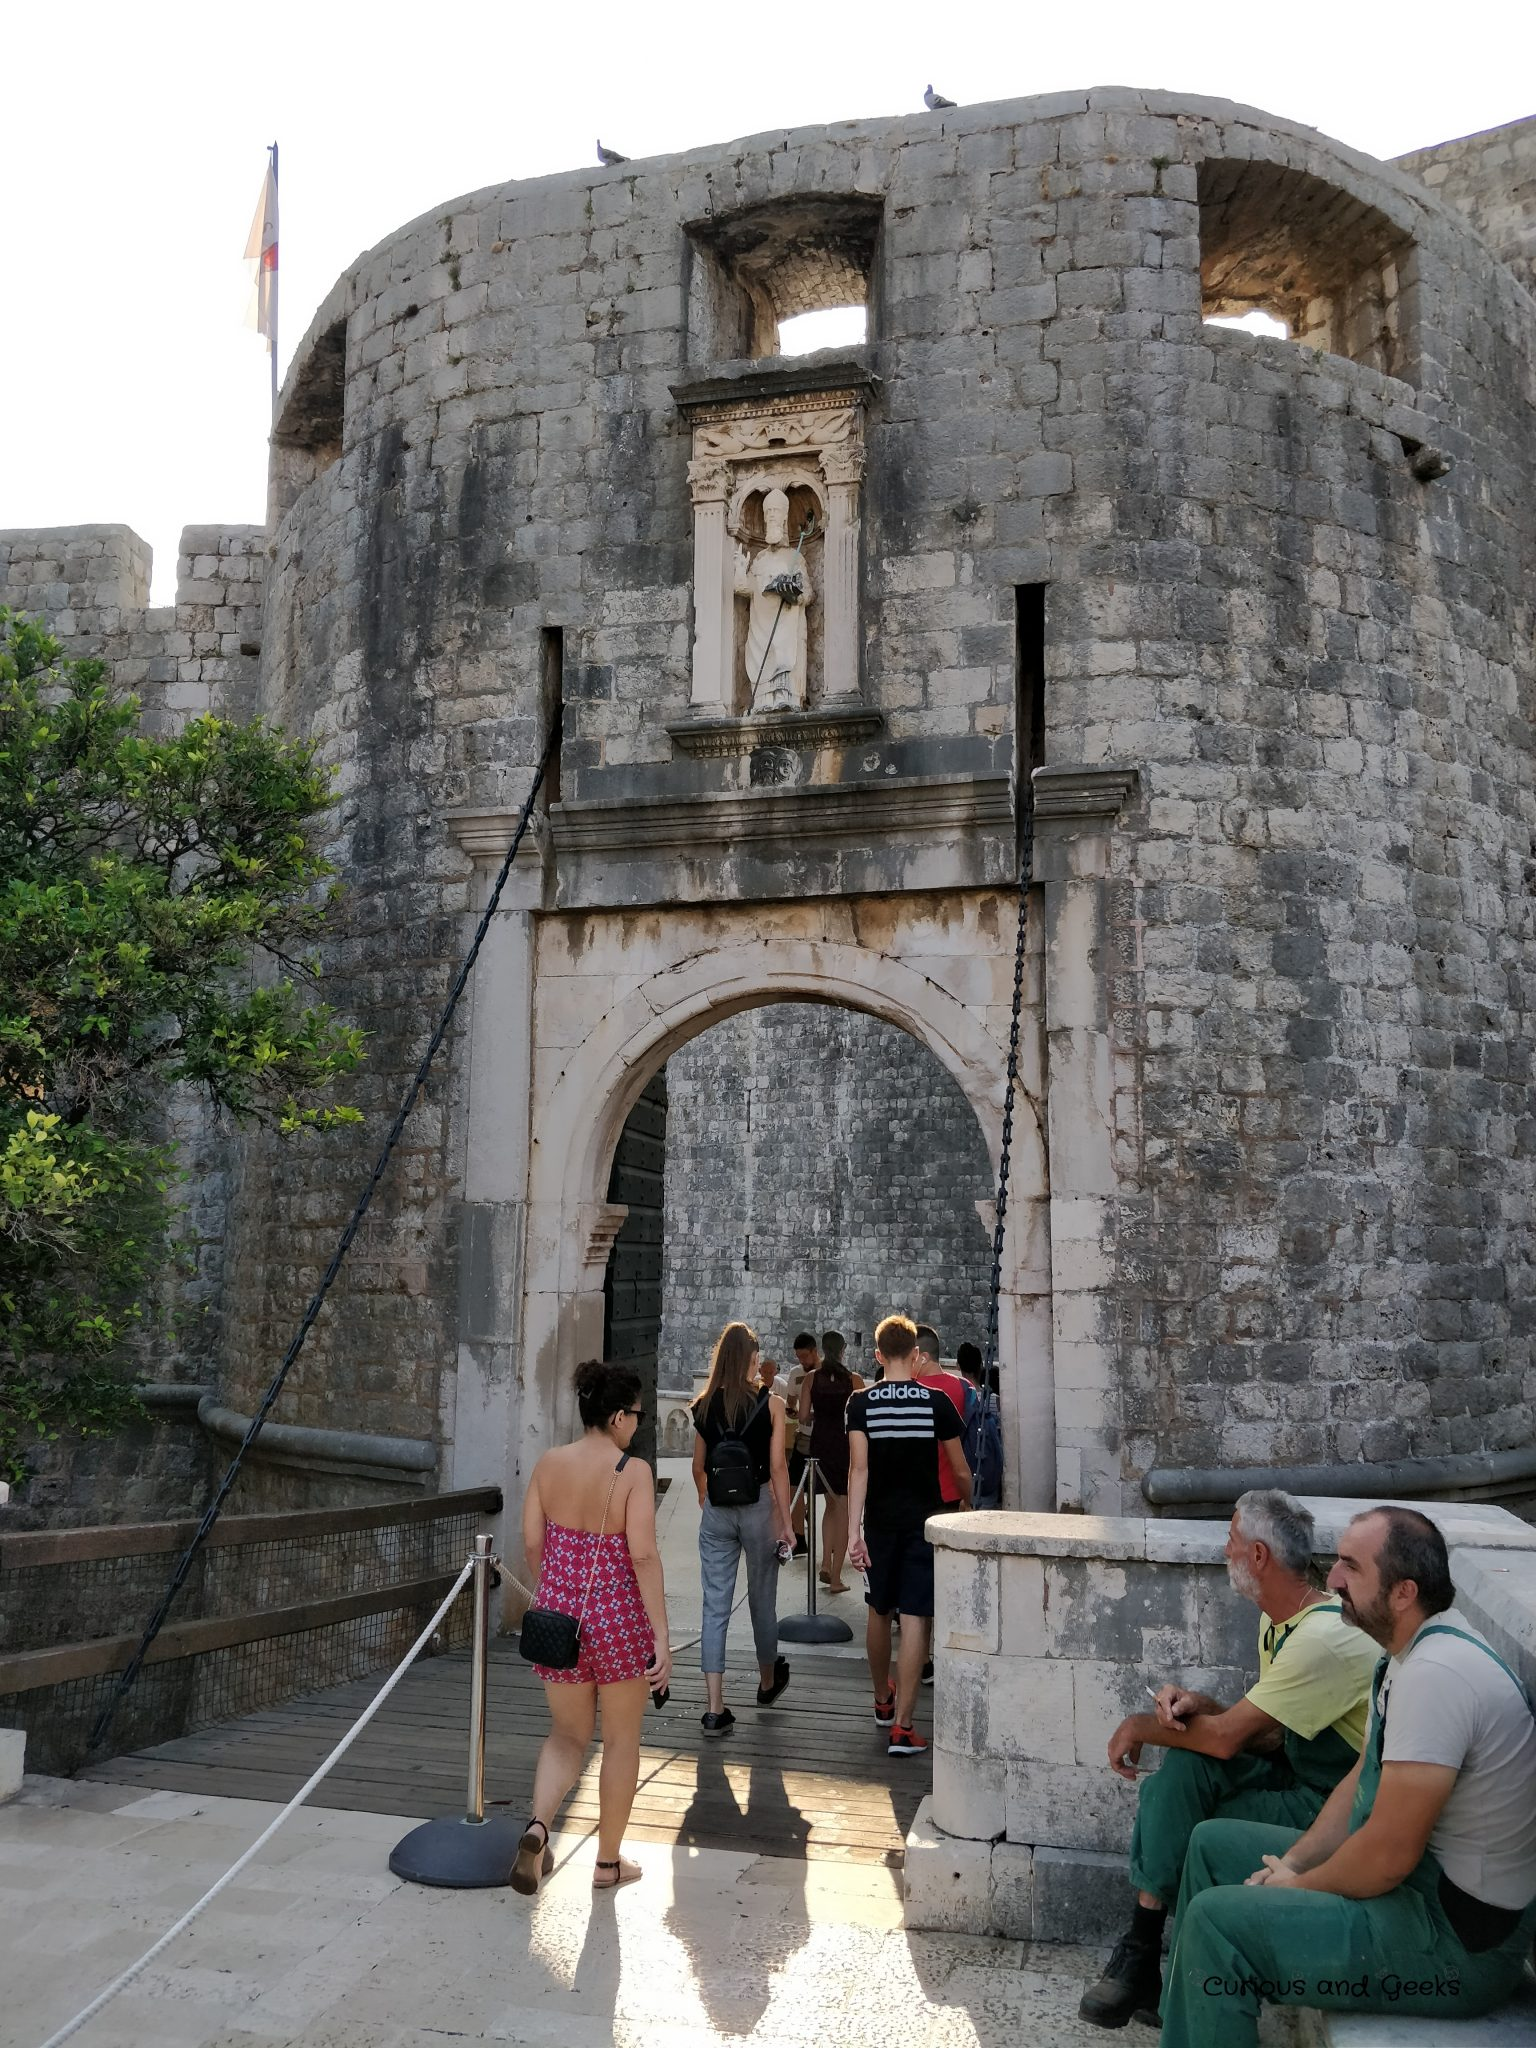 Pile Gate in Dubrovnik Old Town - filming location for s02e06 of Game of Thrones